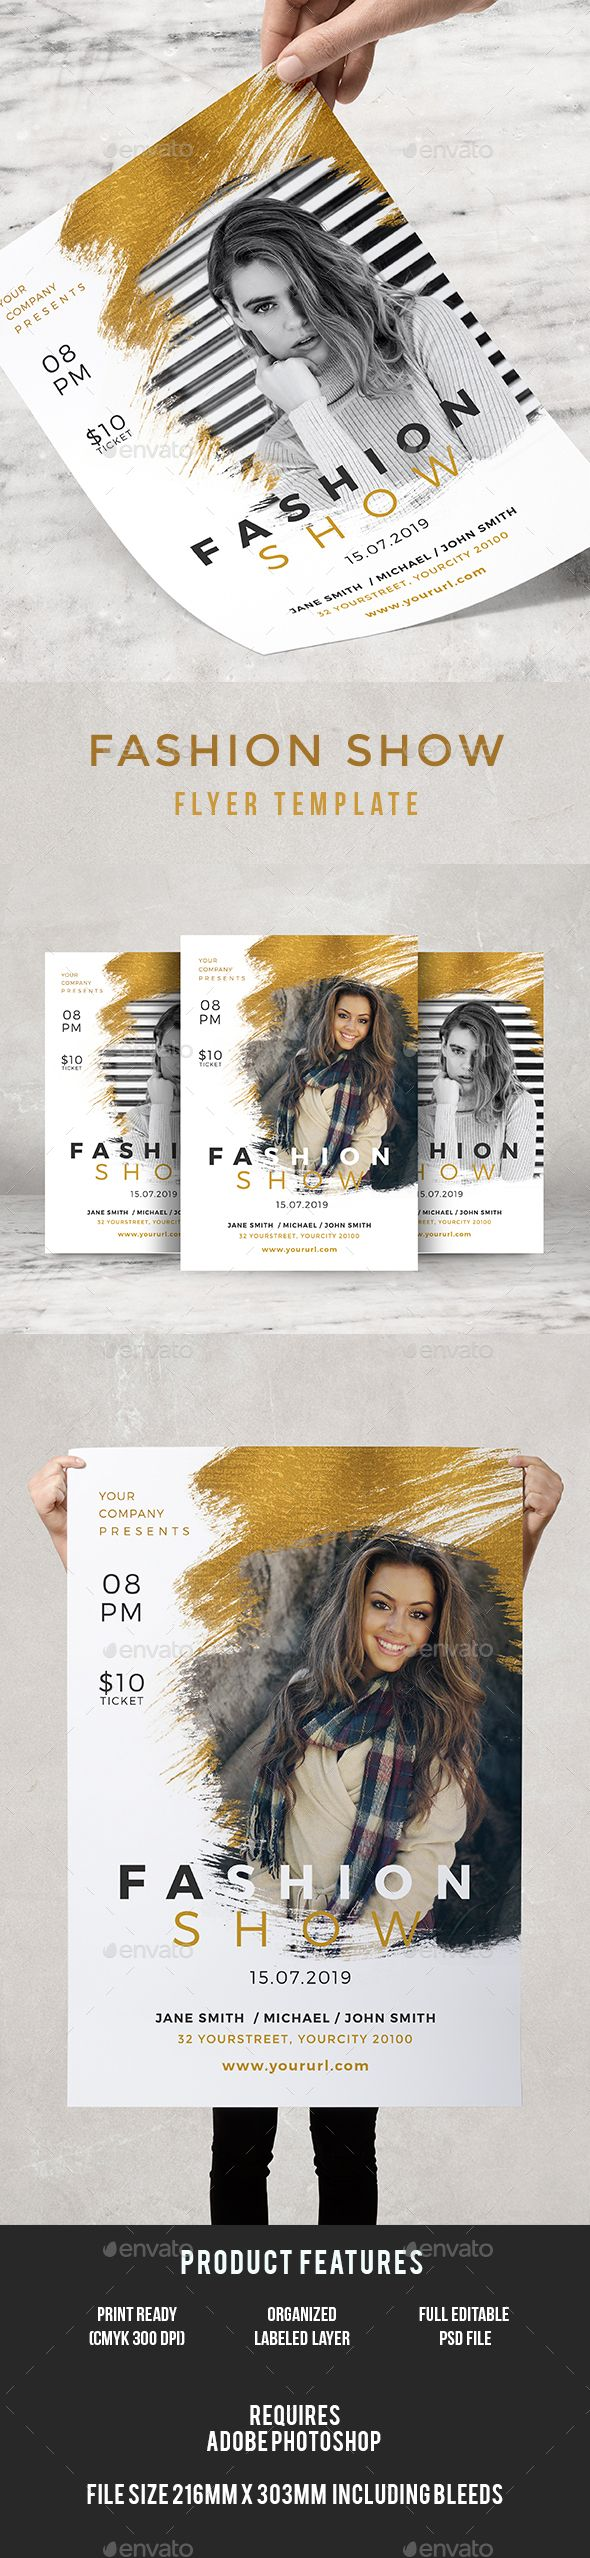 Fashion Show Flyer — Photoshop PSD #red carpet #fashion flyer • Available here → https://graphicriver.net/item/fashion-show-flyer/19545202?ref=pxcr